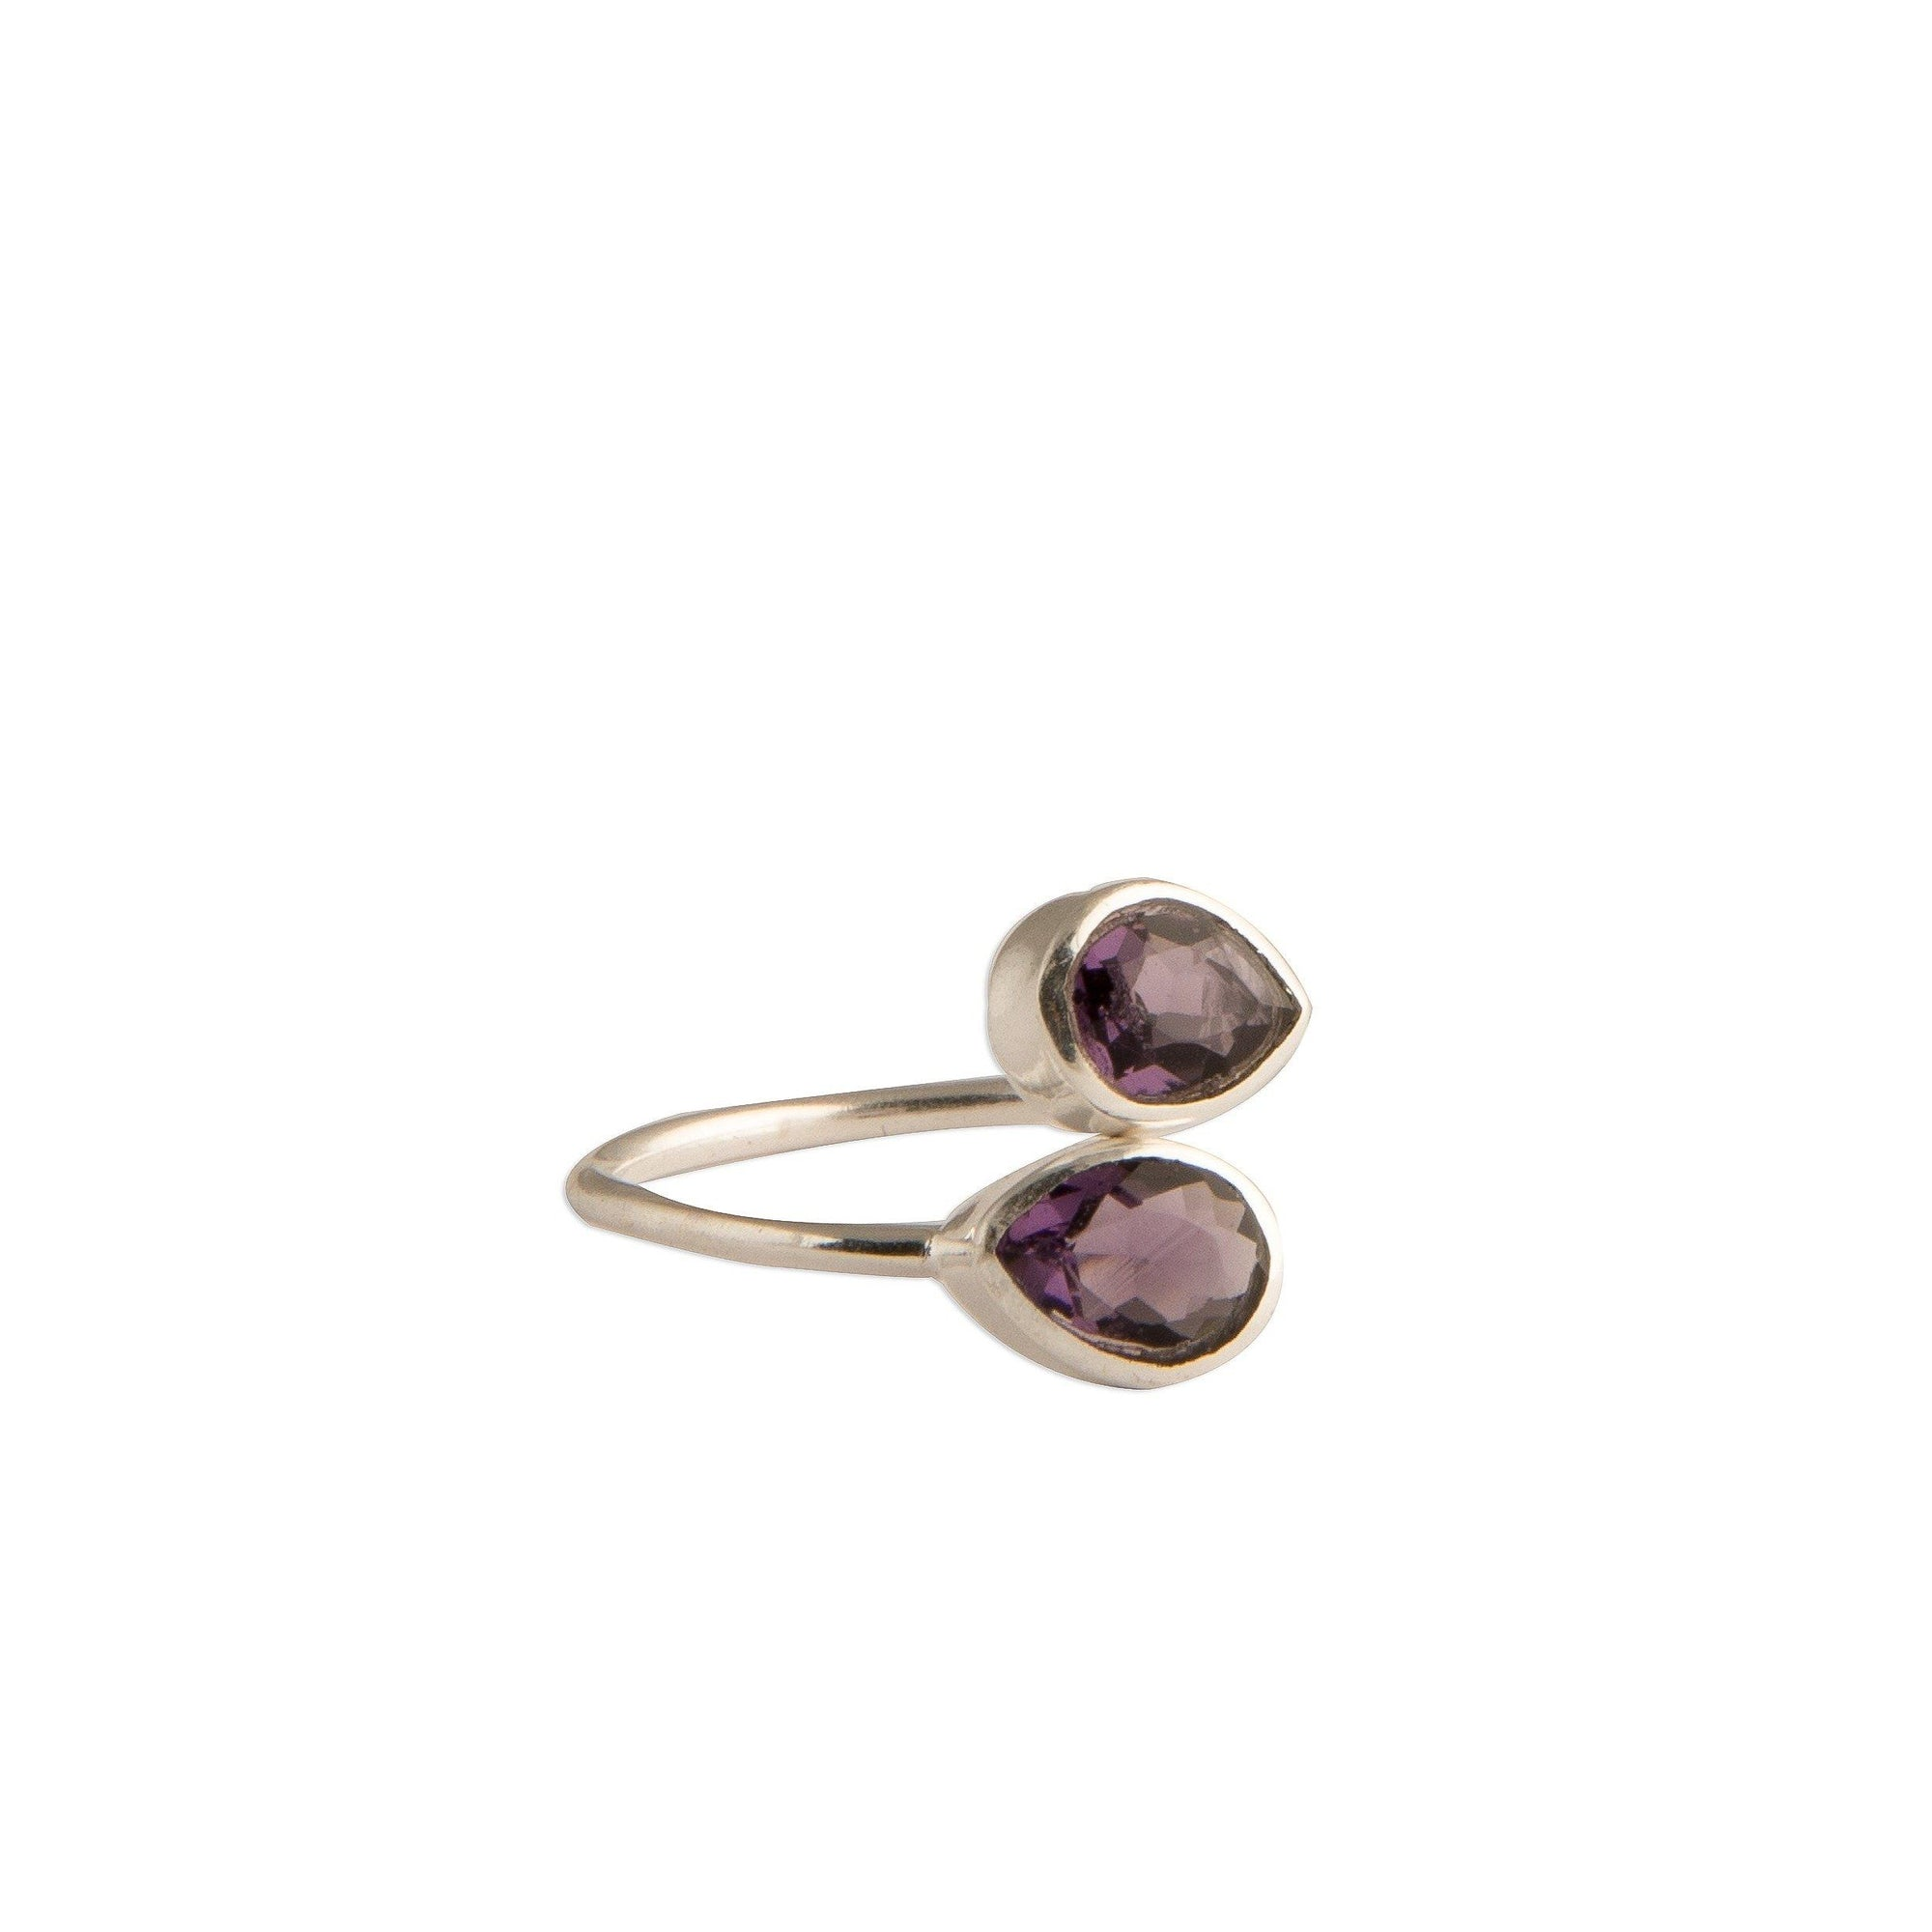 Sasha double tear-drop adjustable silver ring in amethyst - Ring